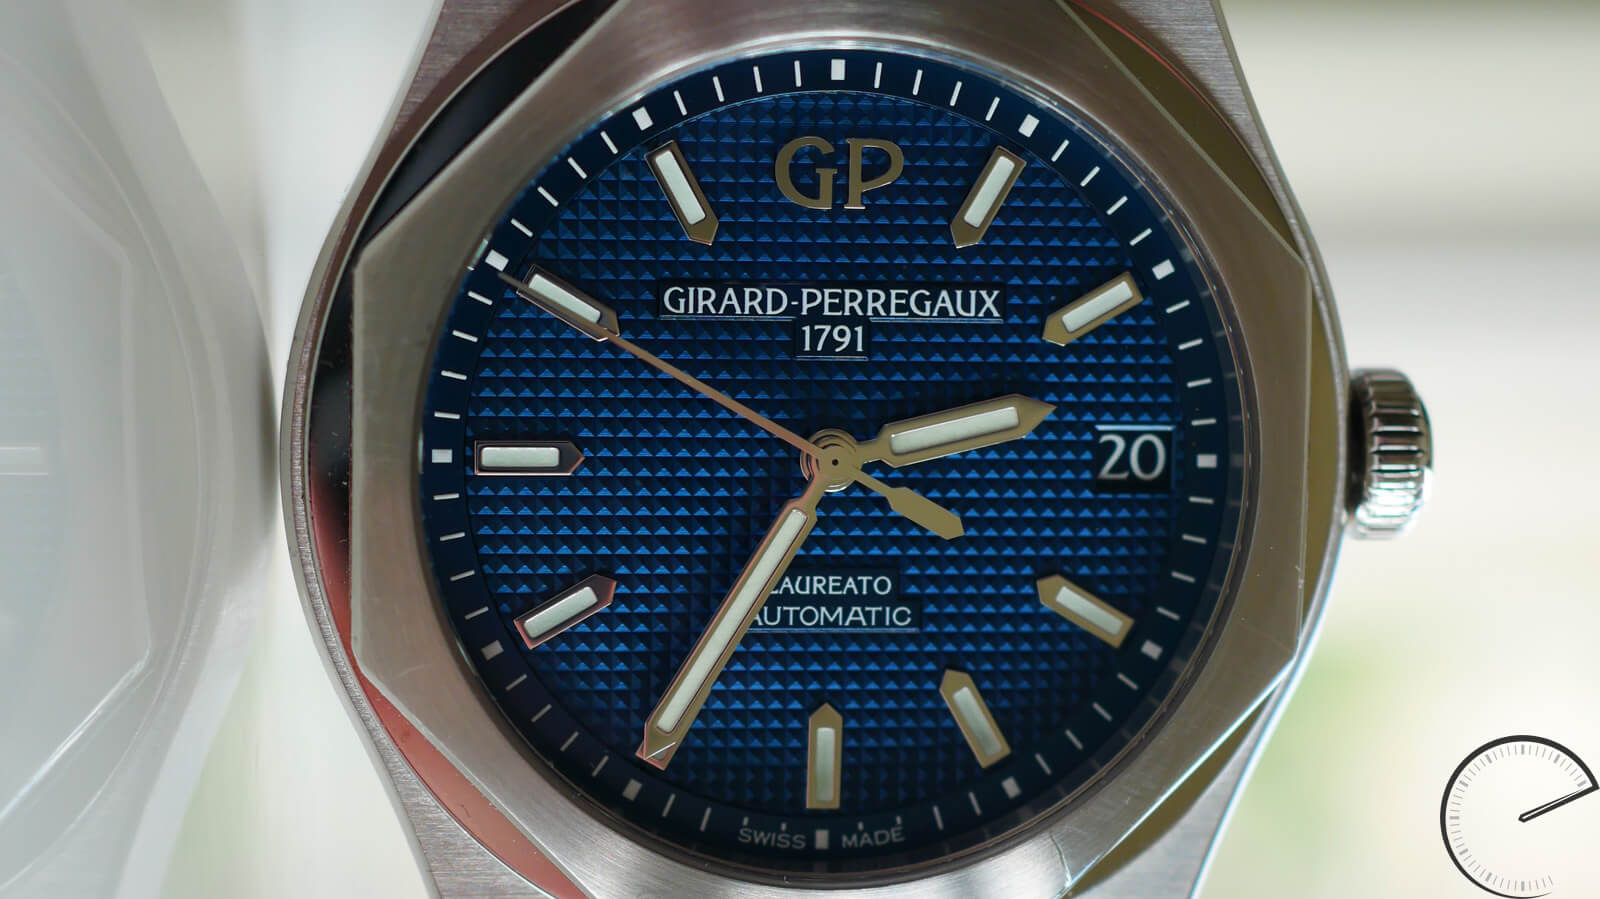 Girard-Perregaux Laureato 42mm - timepiece inspired by 1970s original